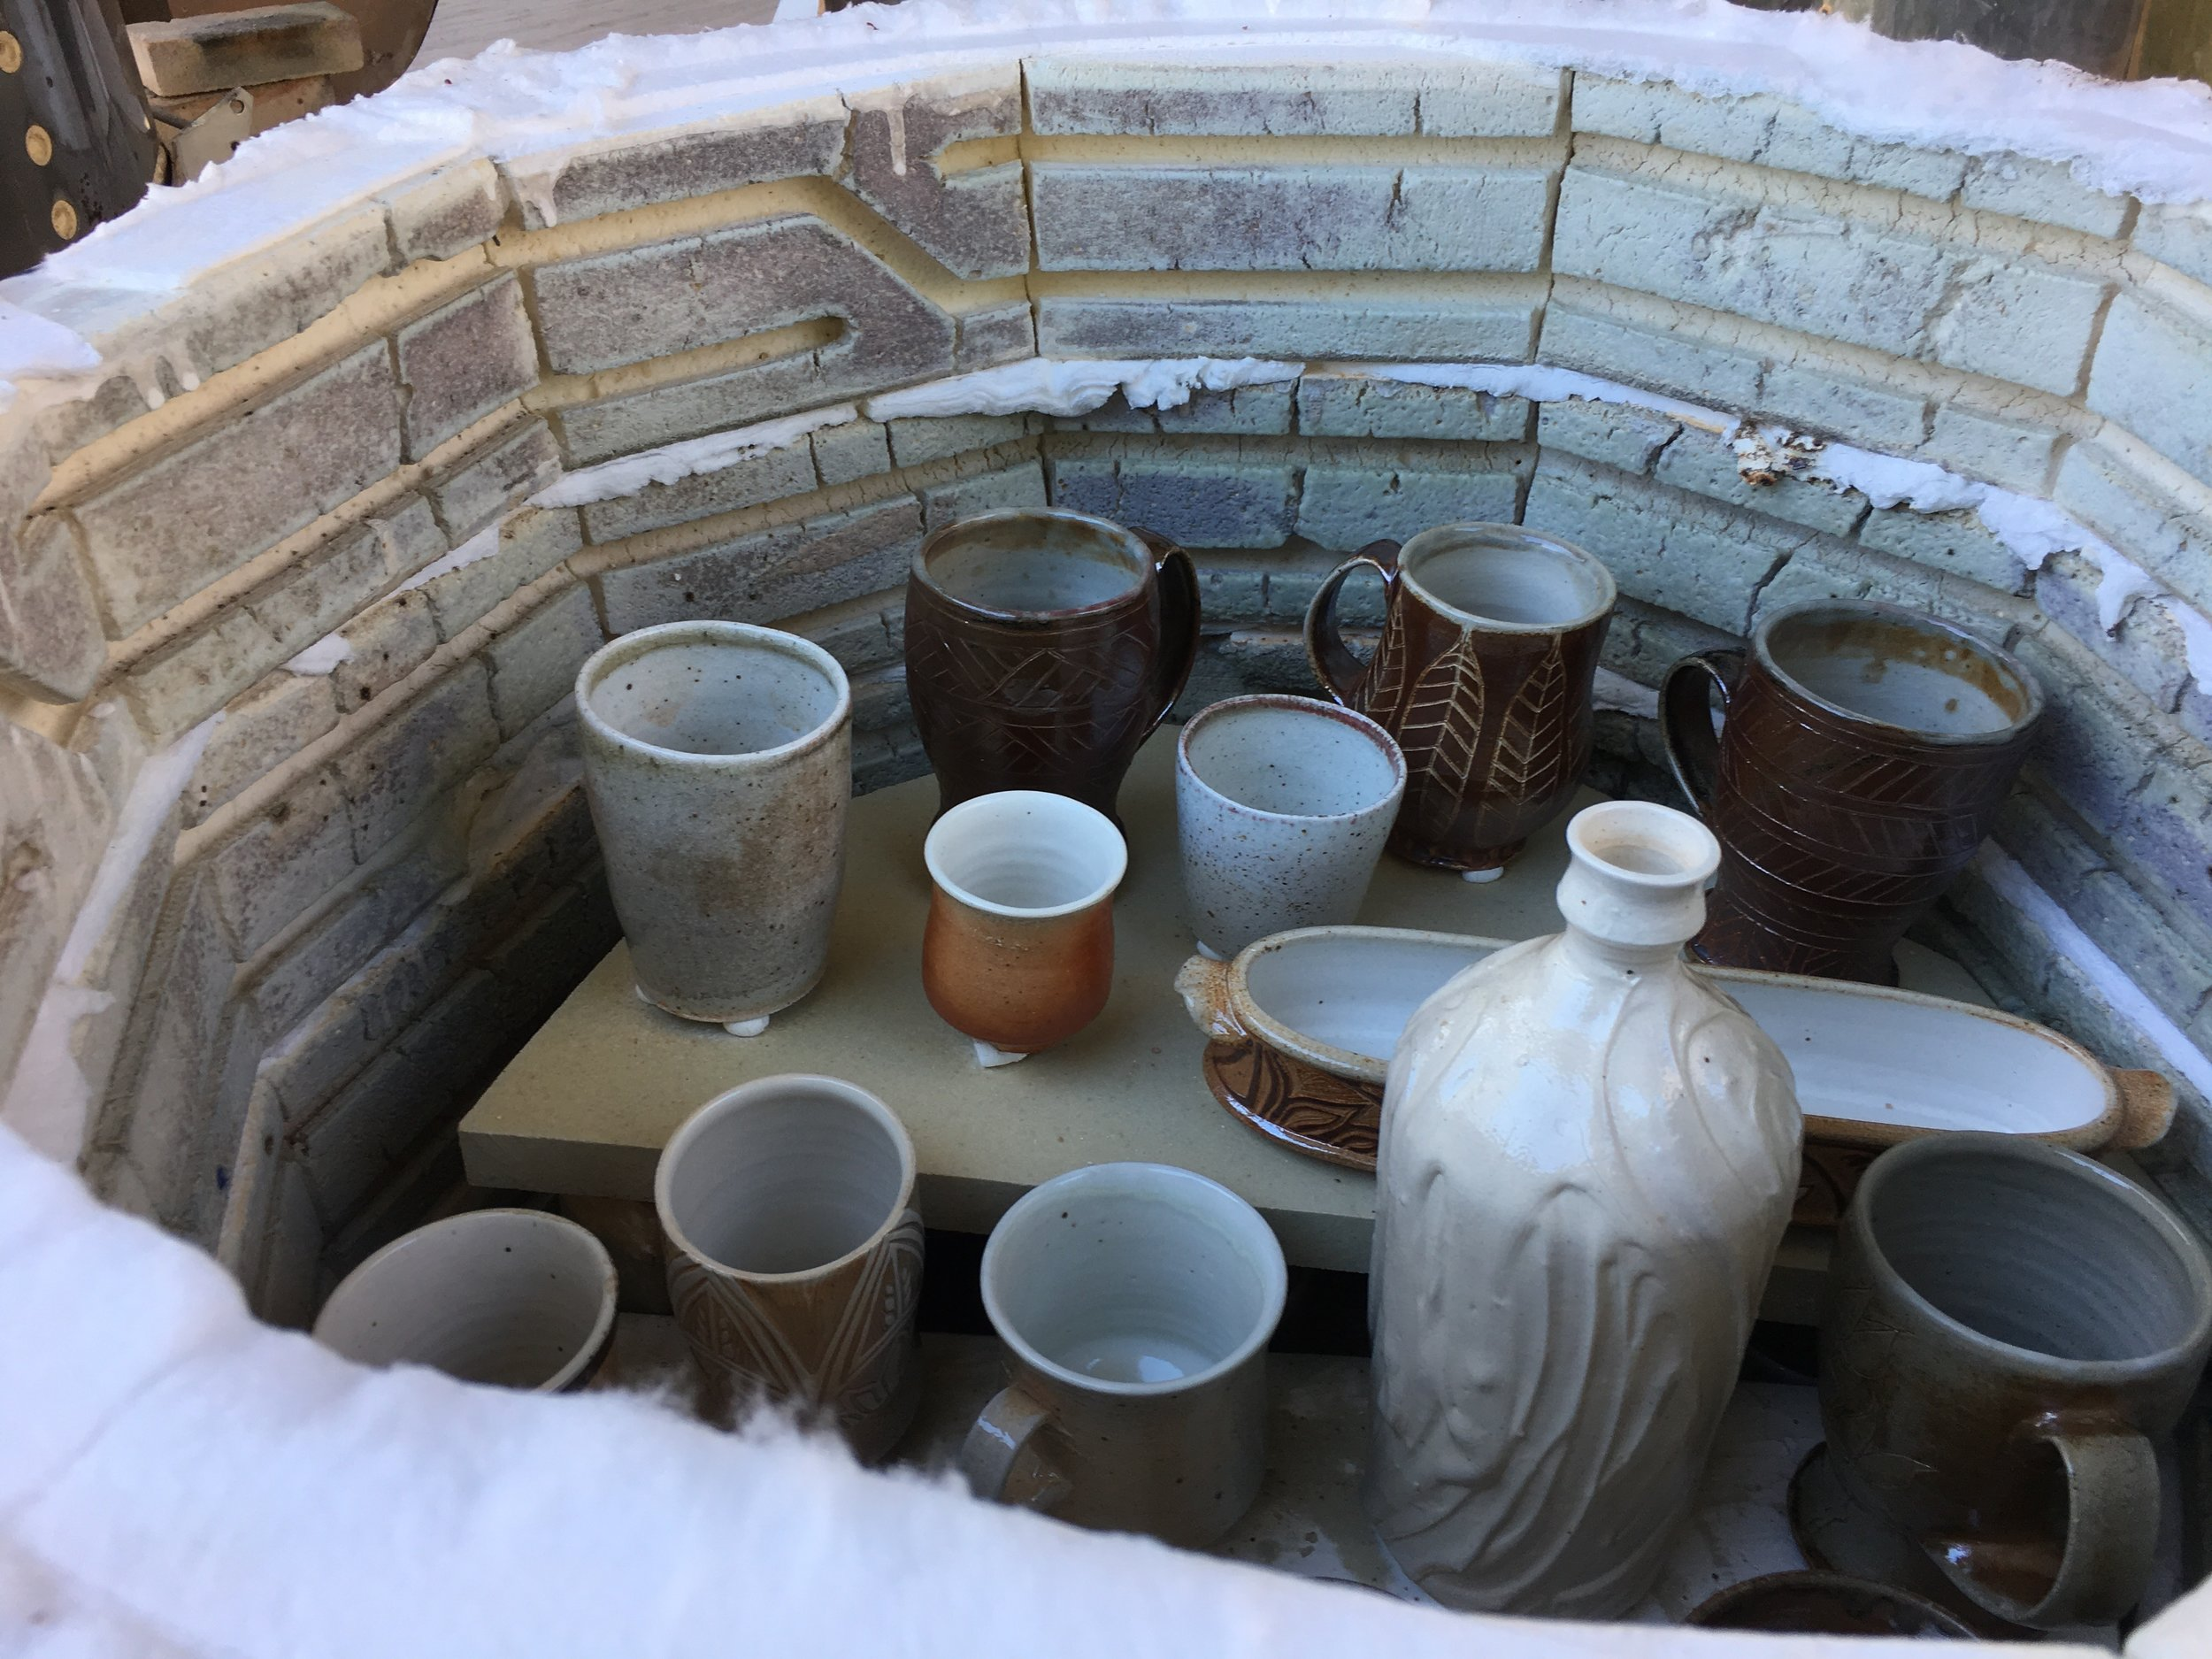 Kiln Chistmasukkah was well received! It looked remarkably similar to the results of what you'd get from a more traditional soda firing, with just a little less reduction.